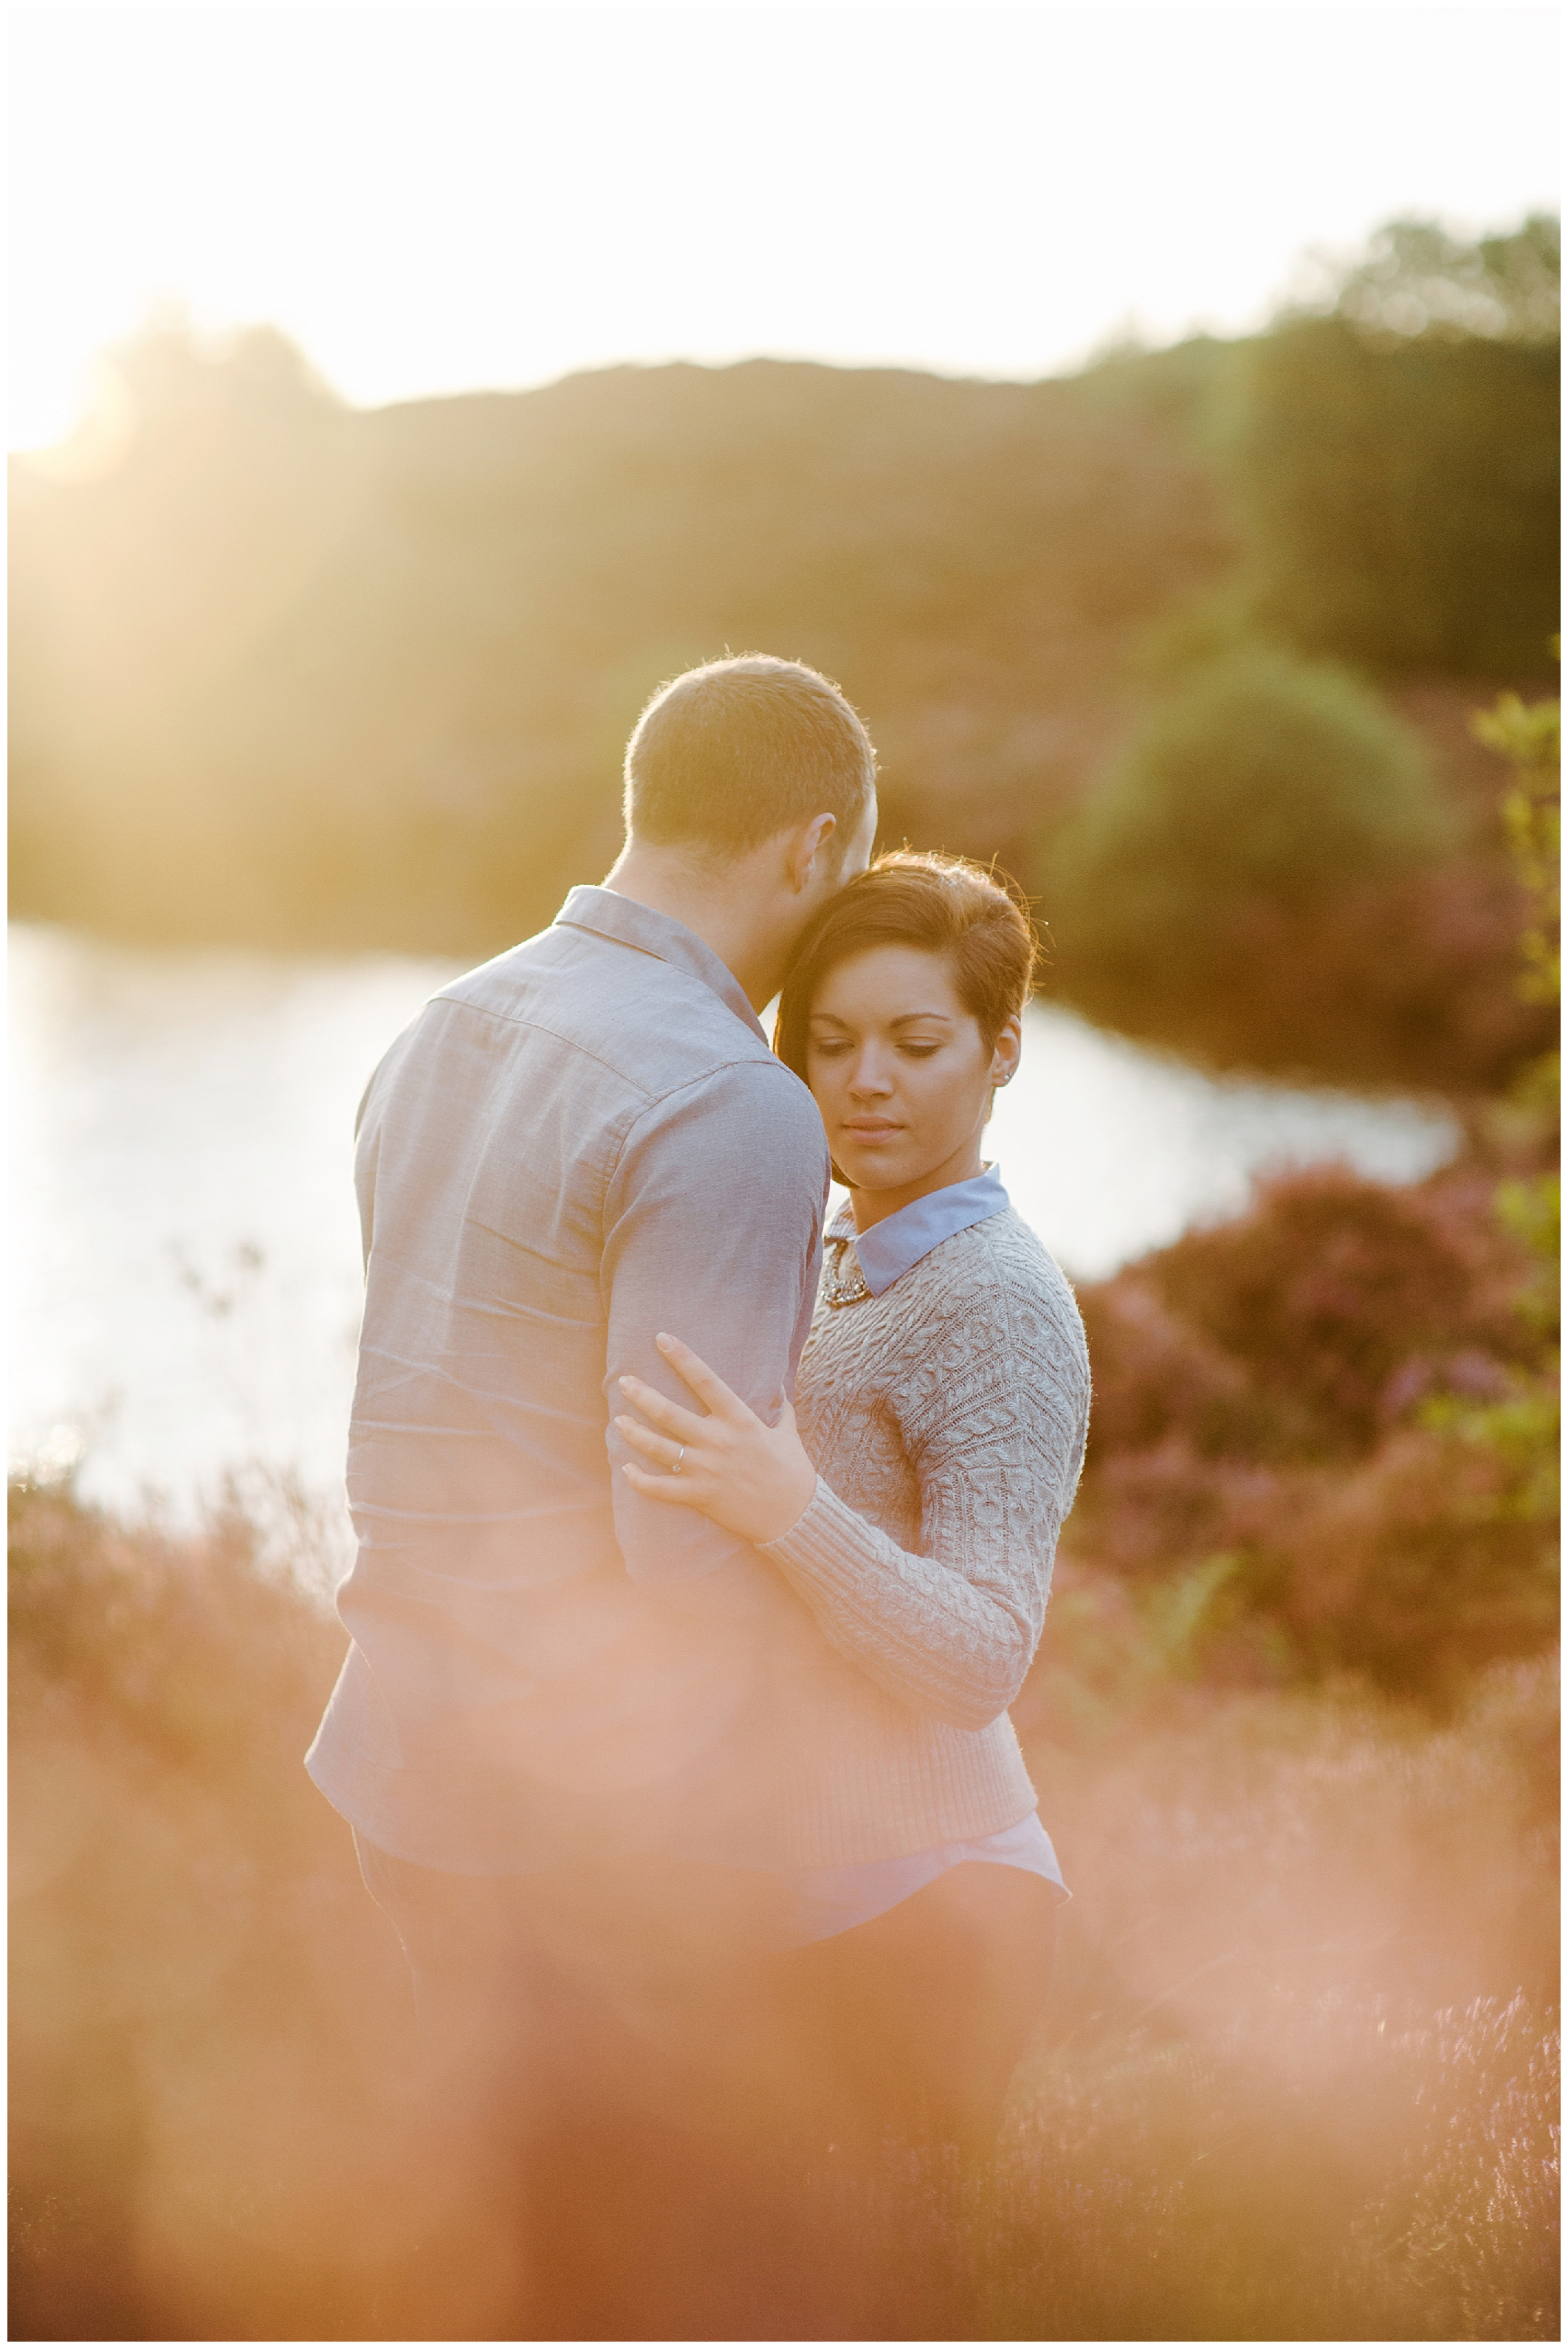 stacey_kenny_gortin_glens_pre_wedding_jude_browne_photography_0022.jpg